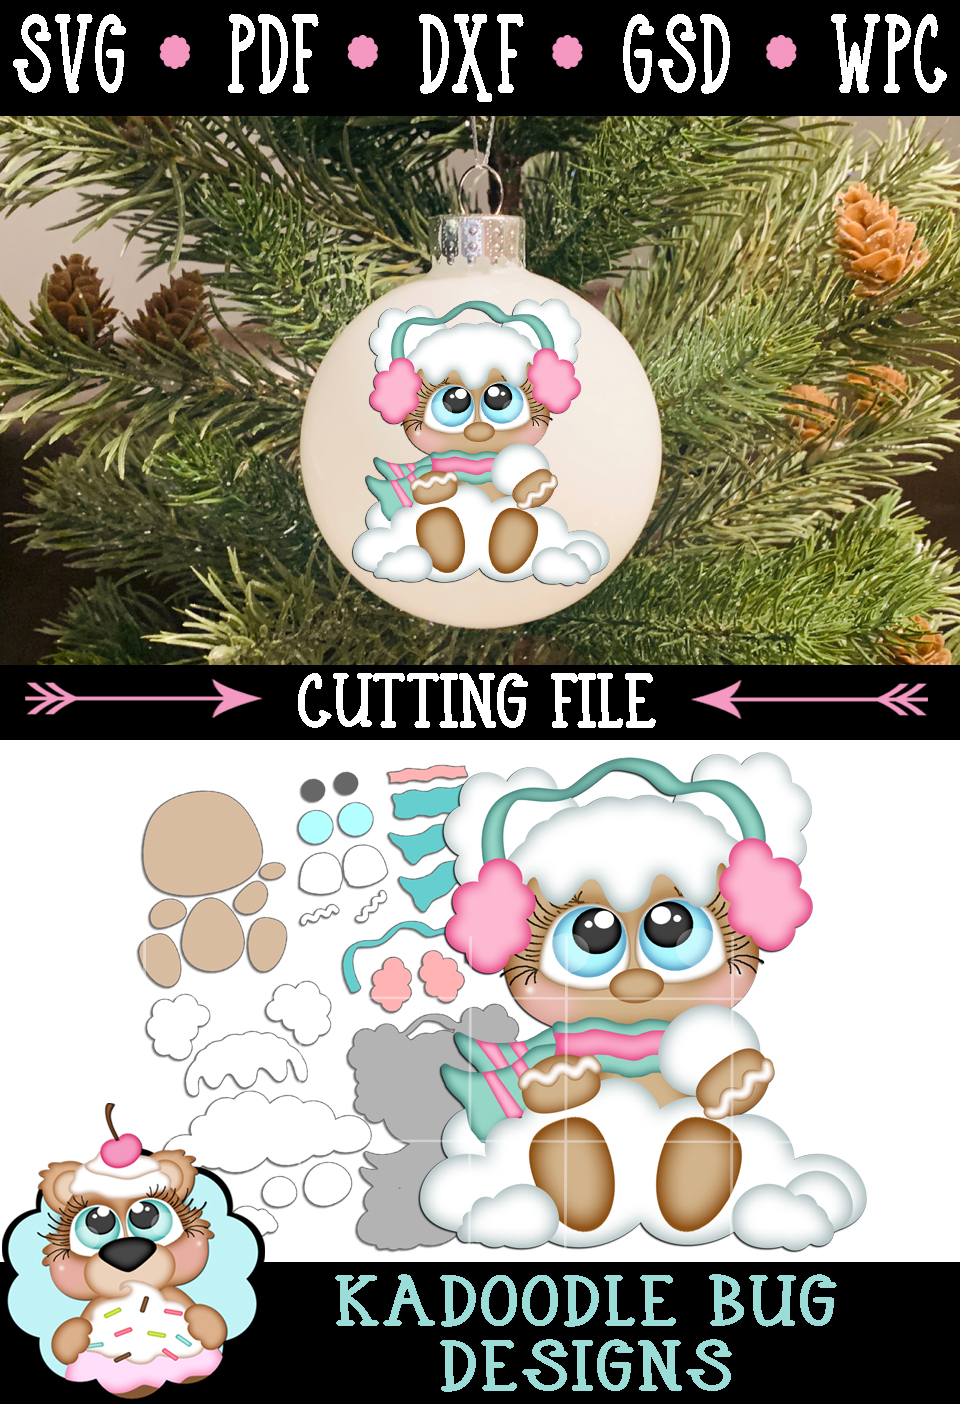 Snowball Ginger Cutie Cut File - SVG PDF DXF GSD WPC example image 2